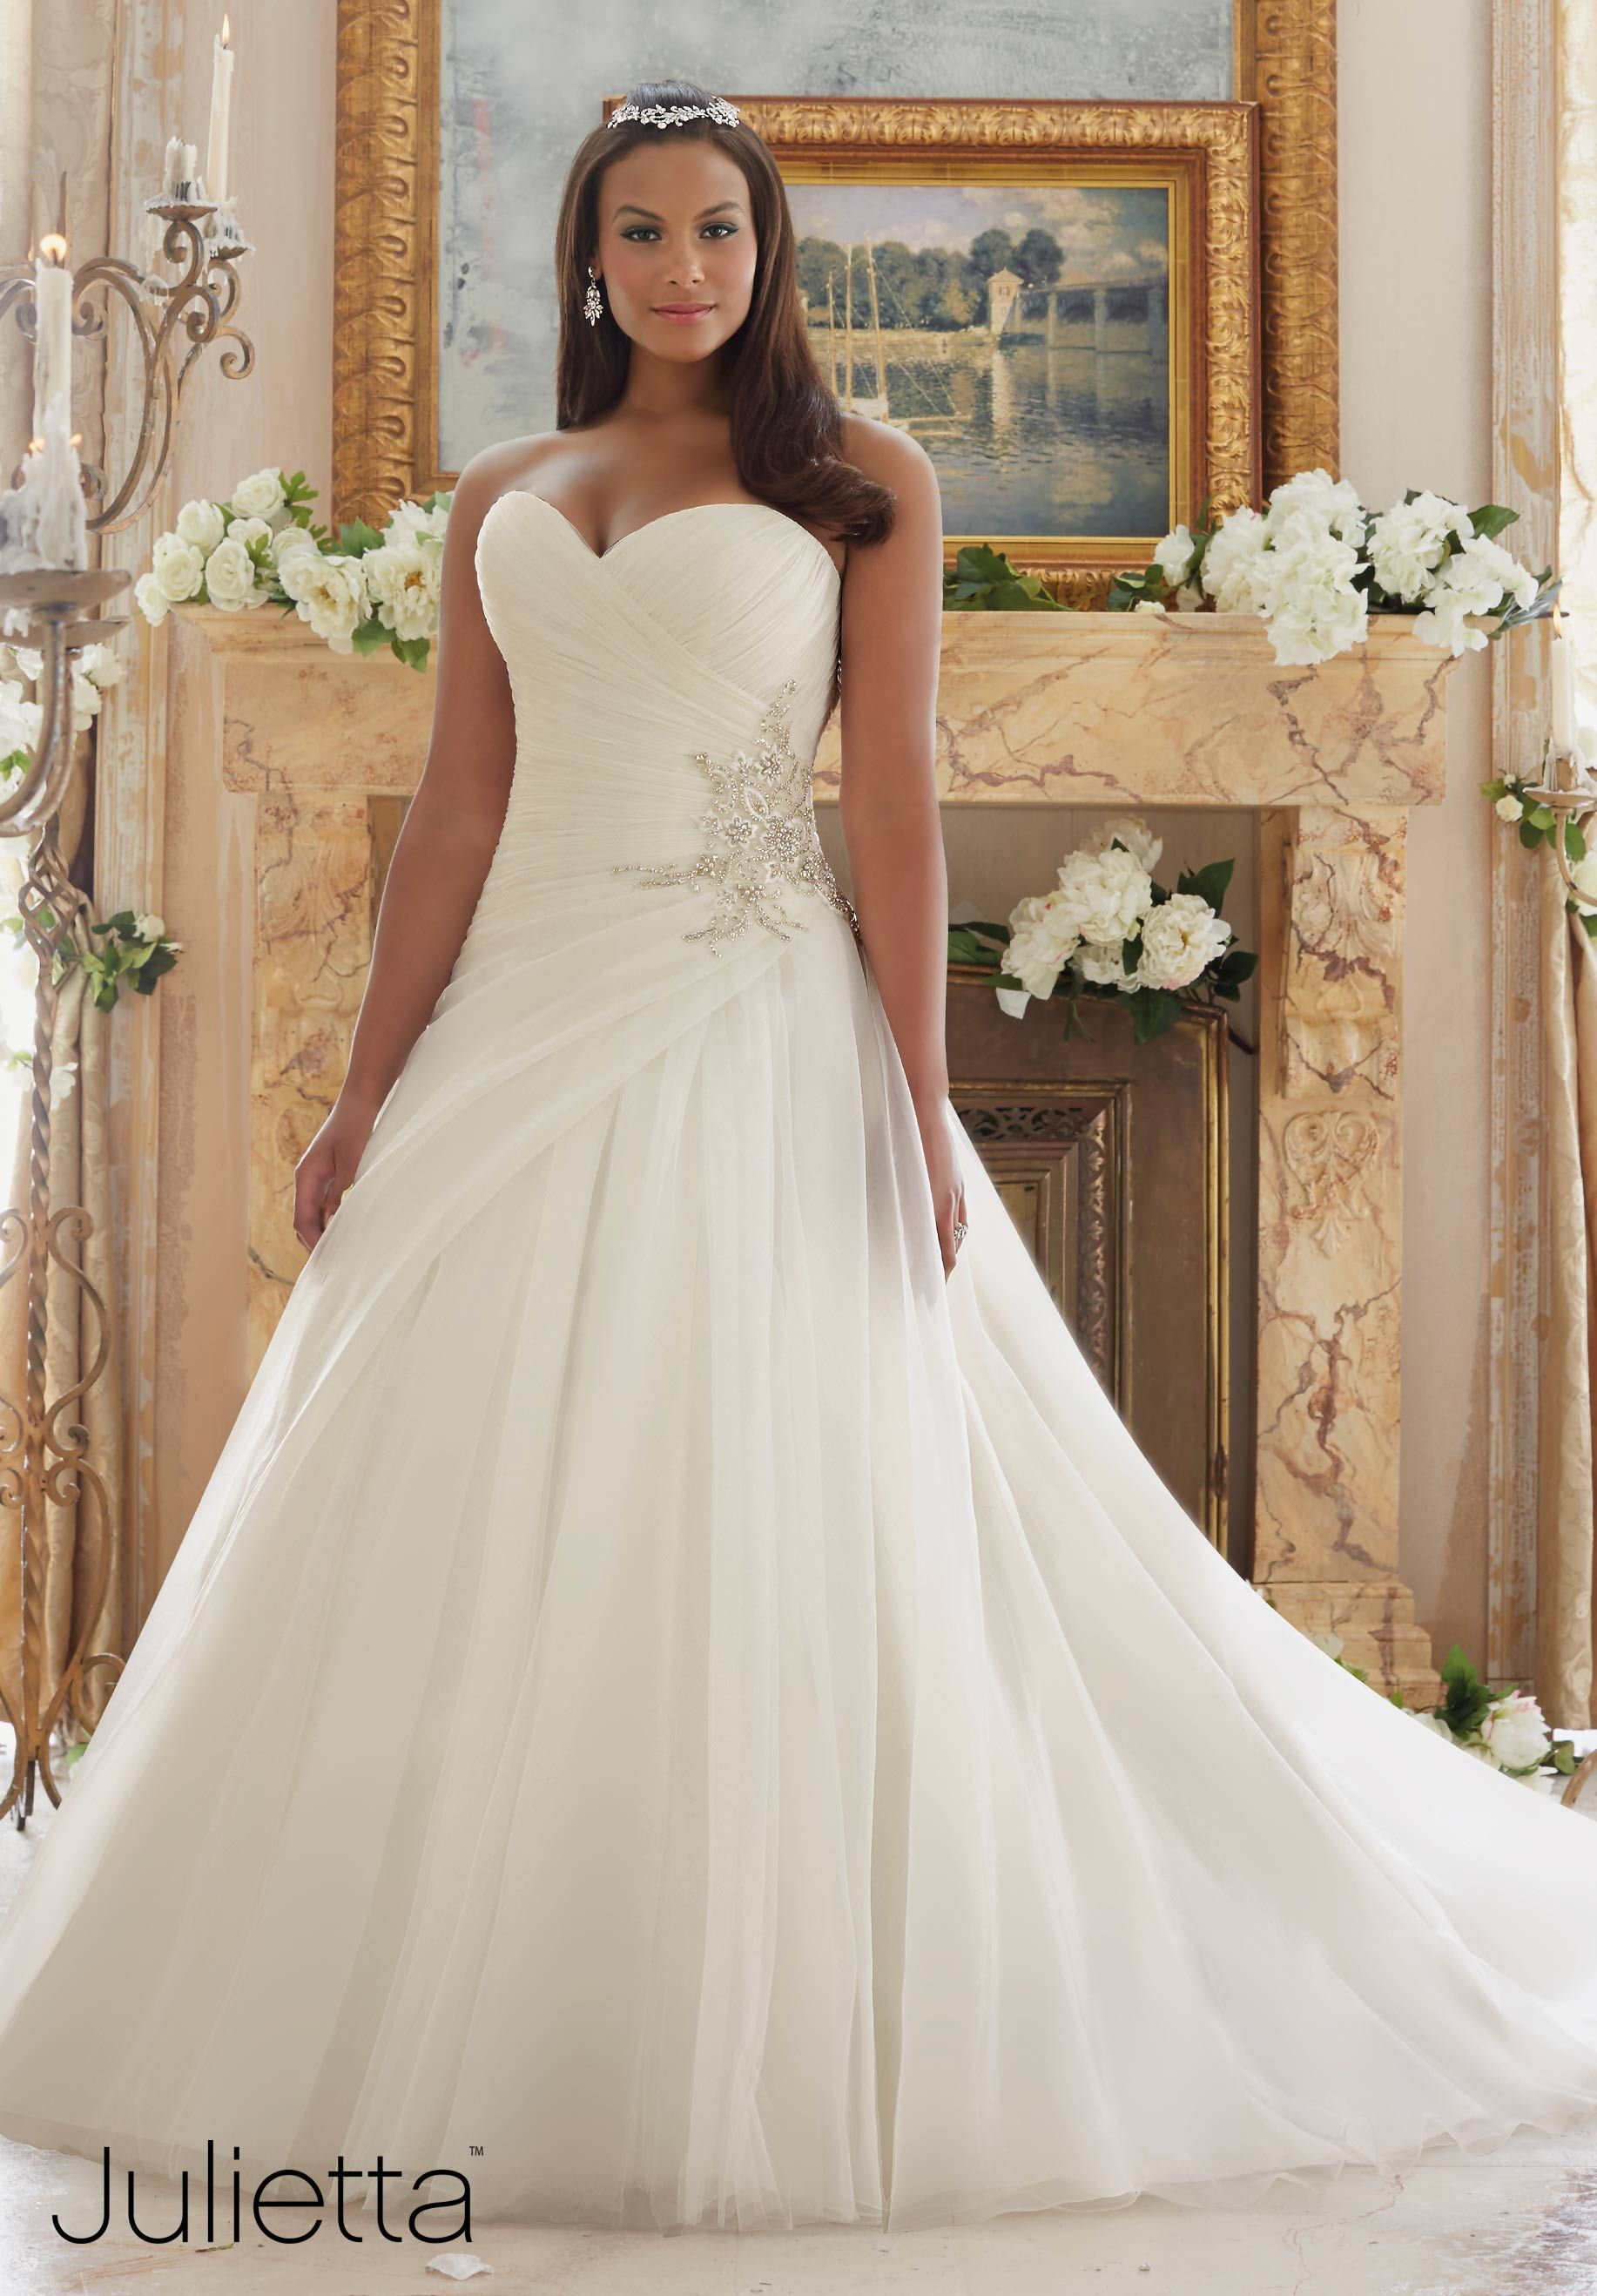 White and silver wedding dresses  Wedding Dresses By Julietta featuring Diamante Beaded Applique on